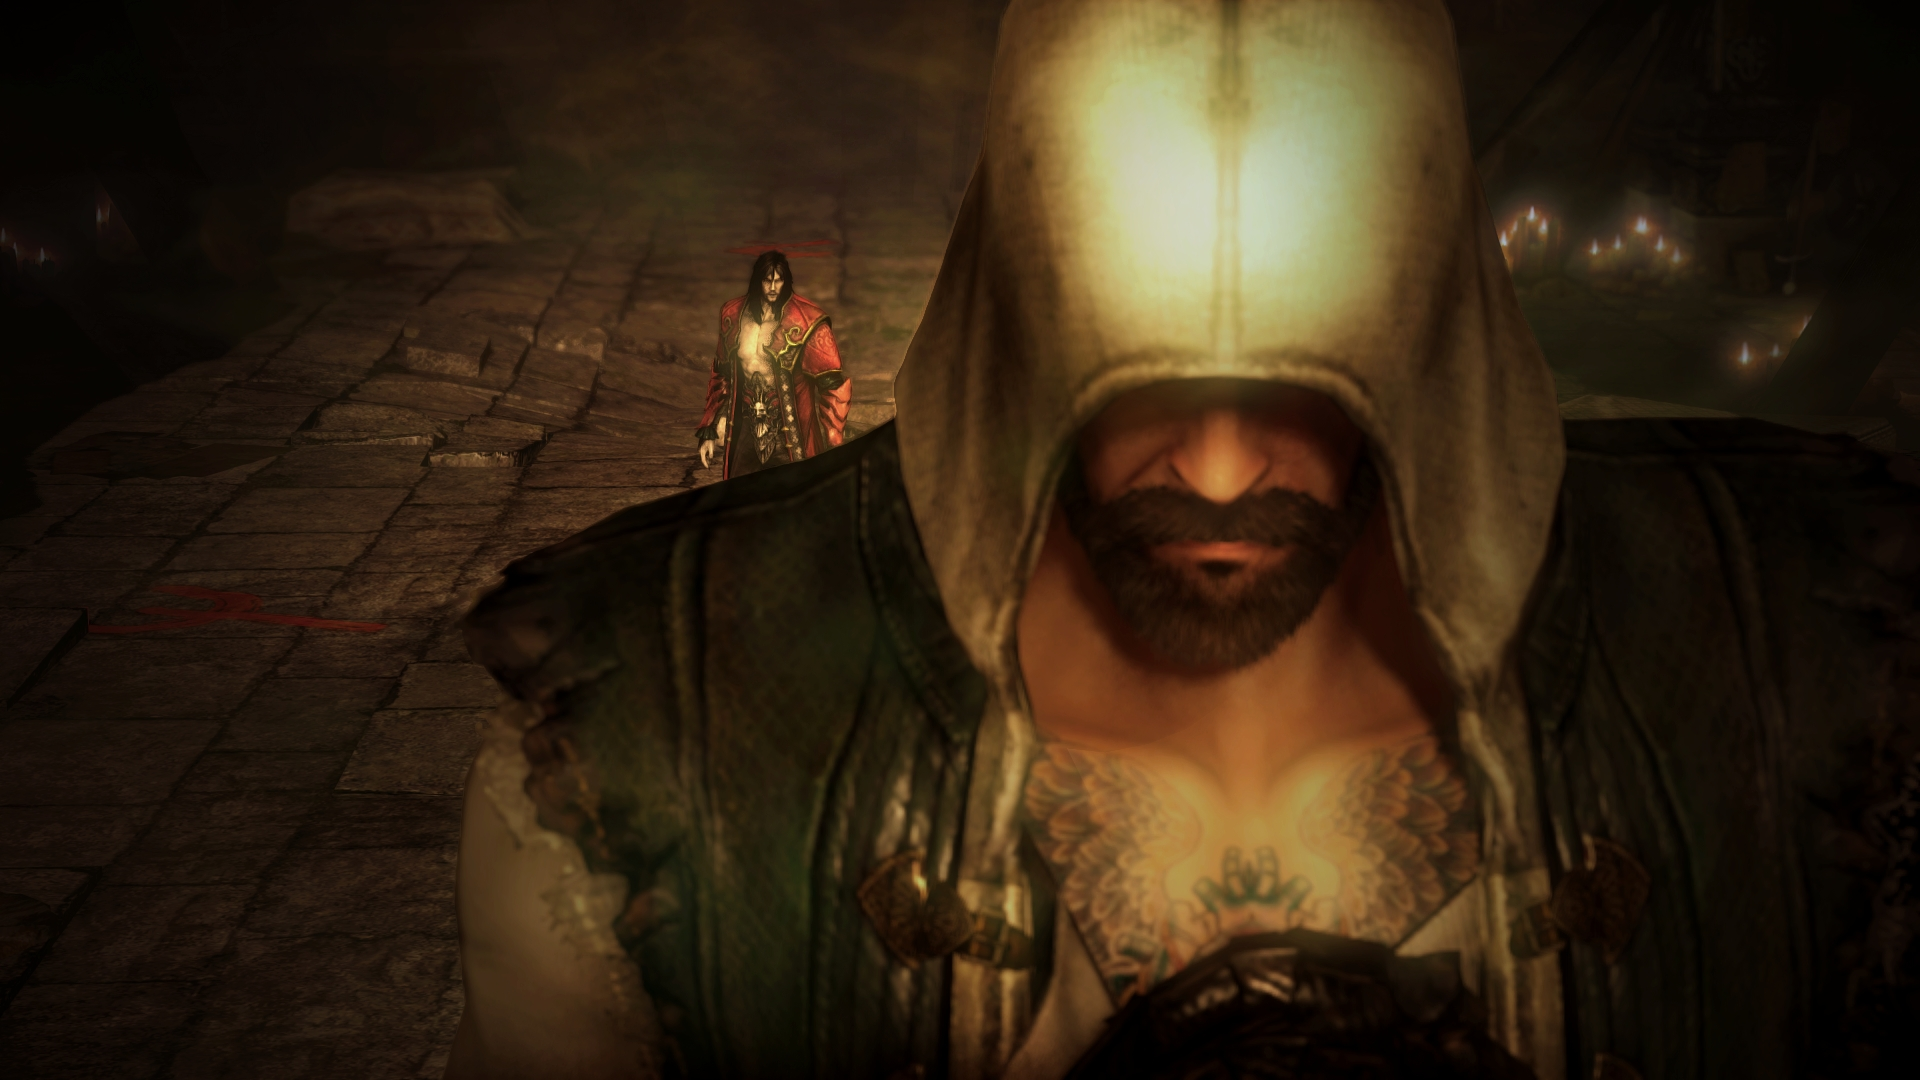 Une bande-annonce de gameplay pour Castlevania : Lords of Shadow 2